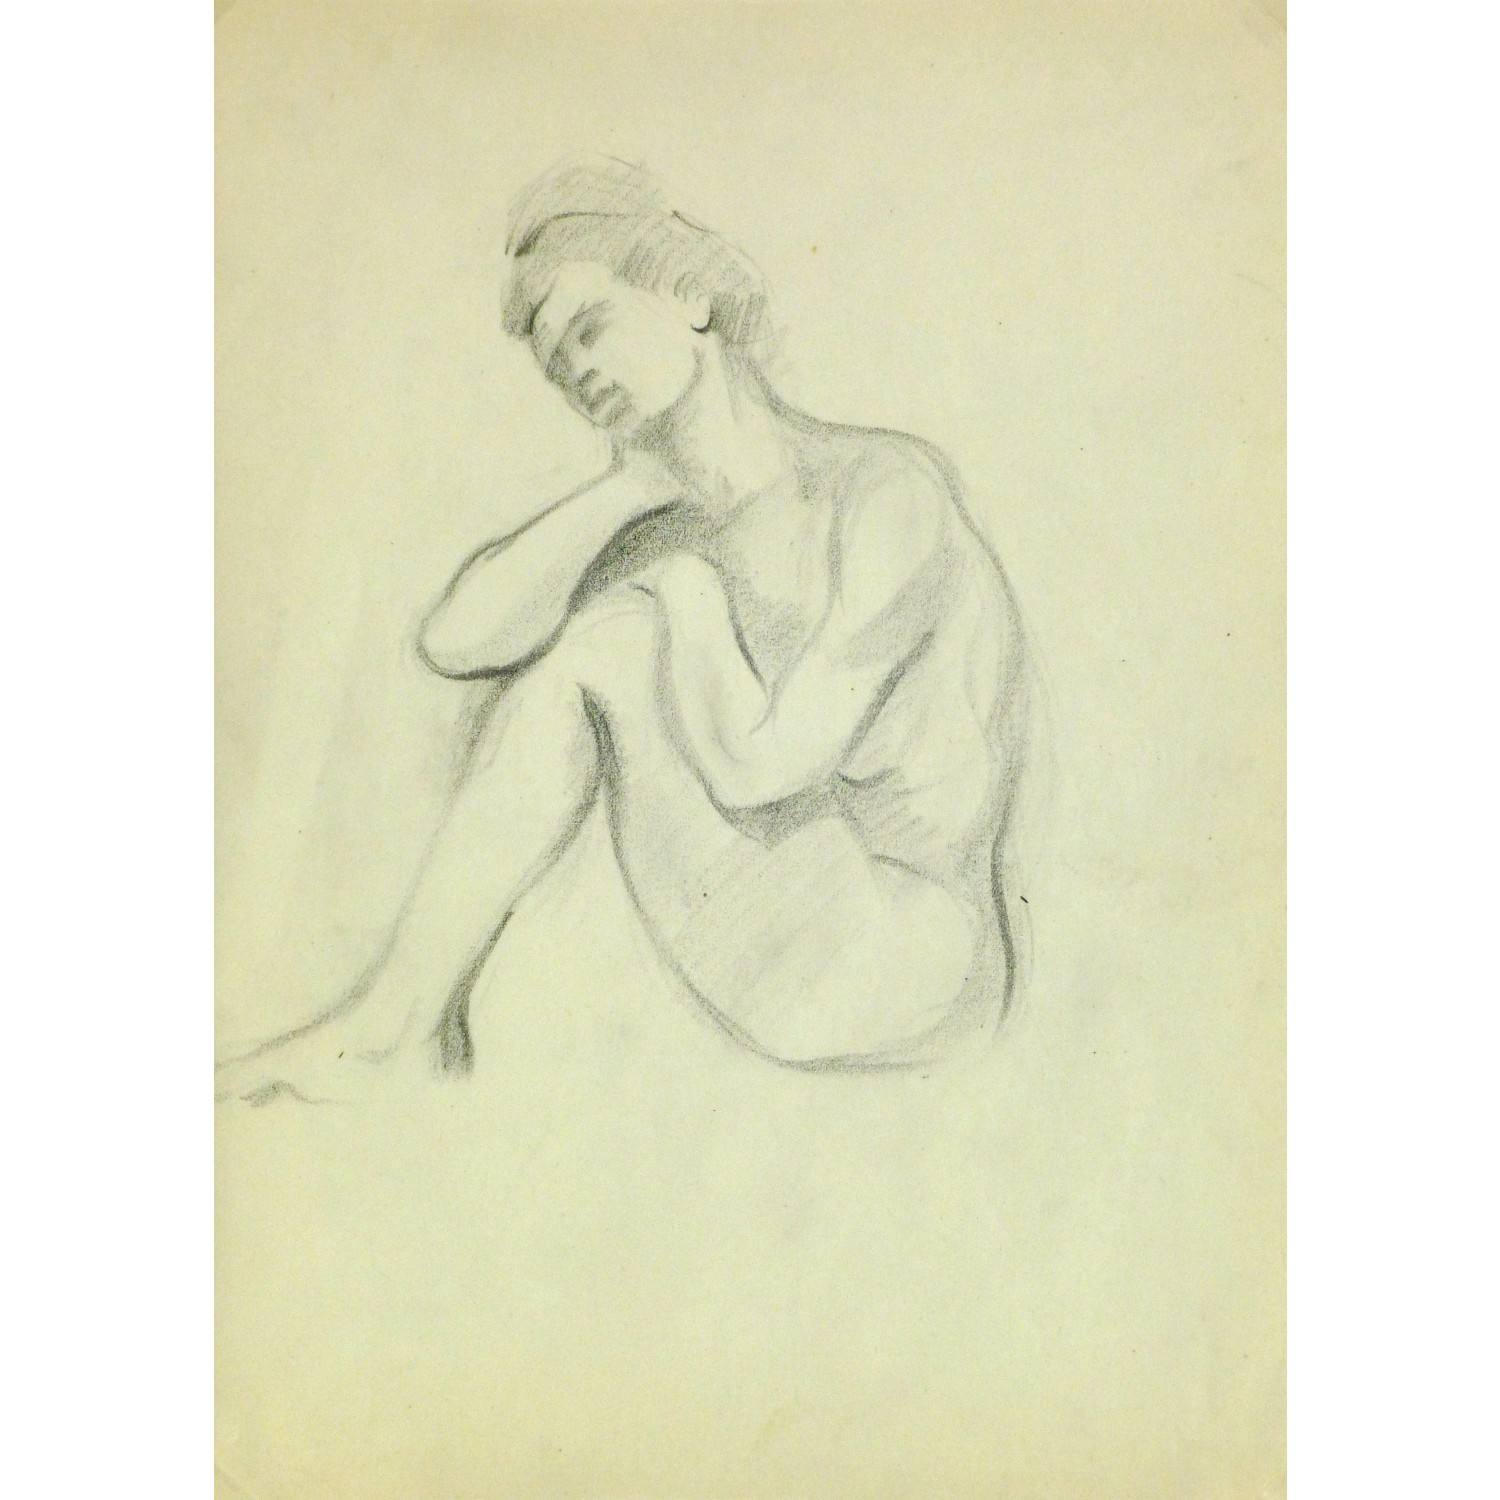 Vintage Pencil Drawing of Female Nude by Jean Ernst 9297